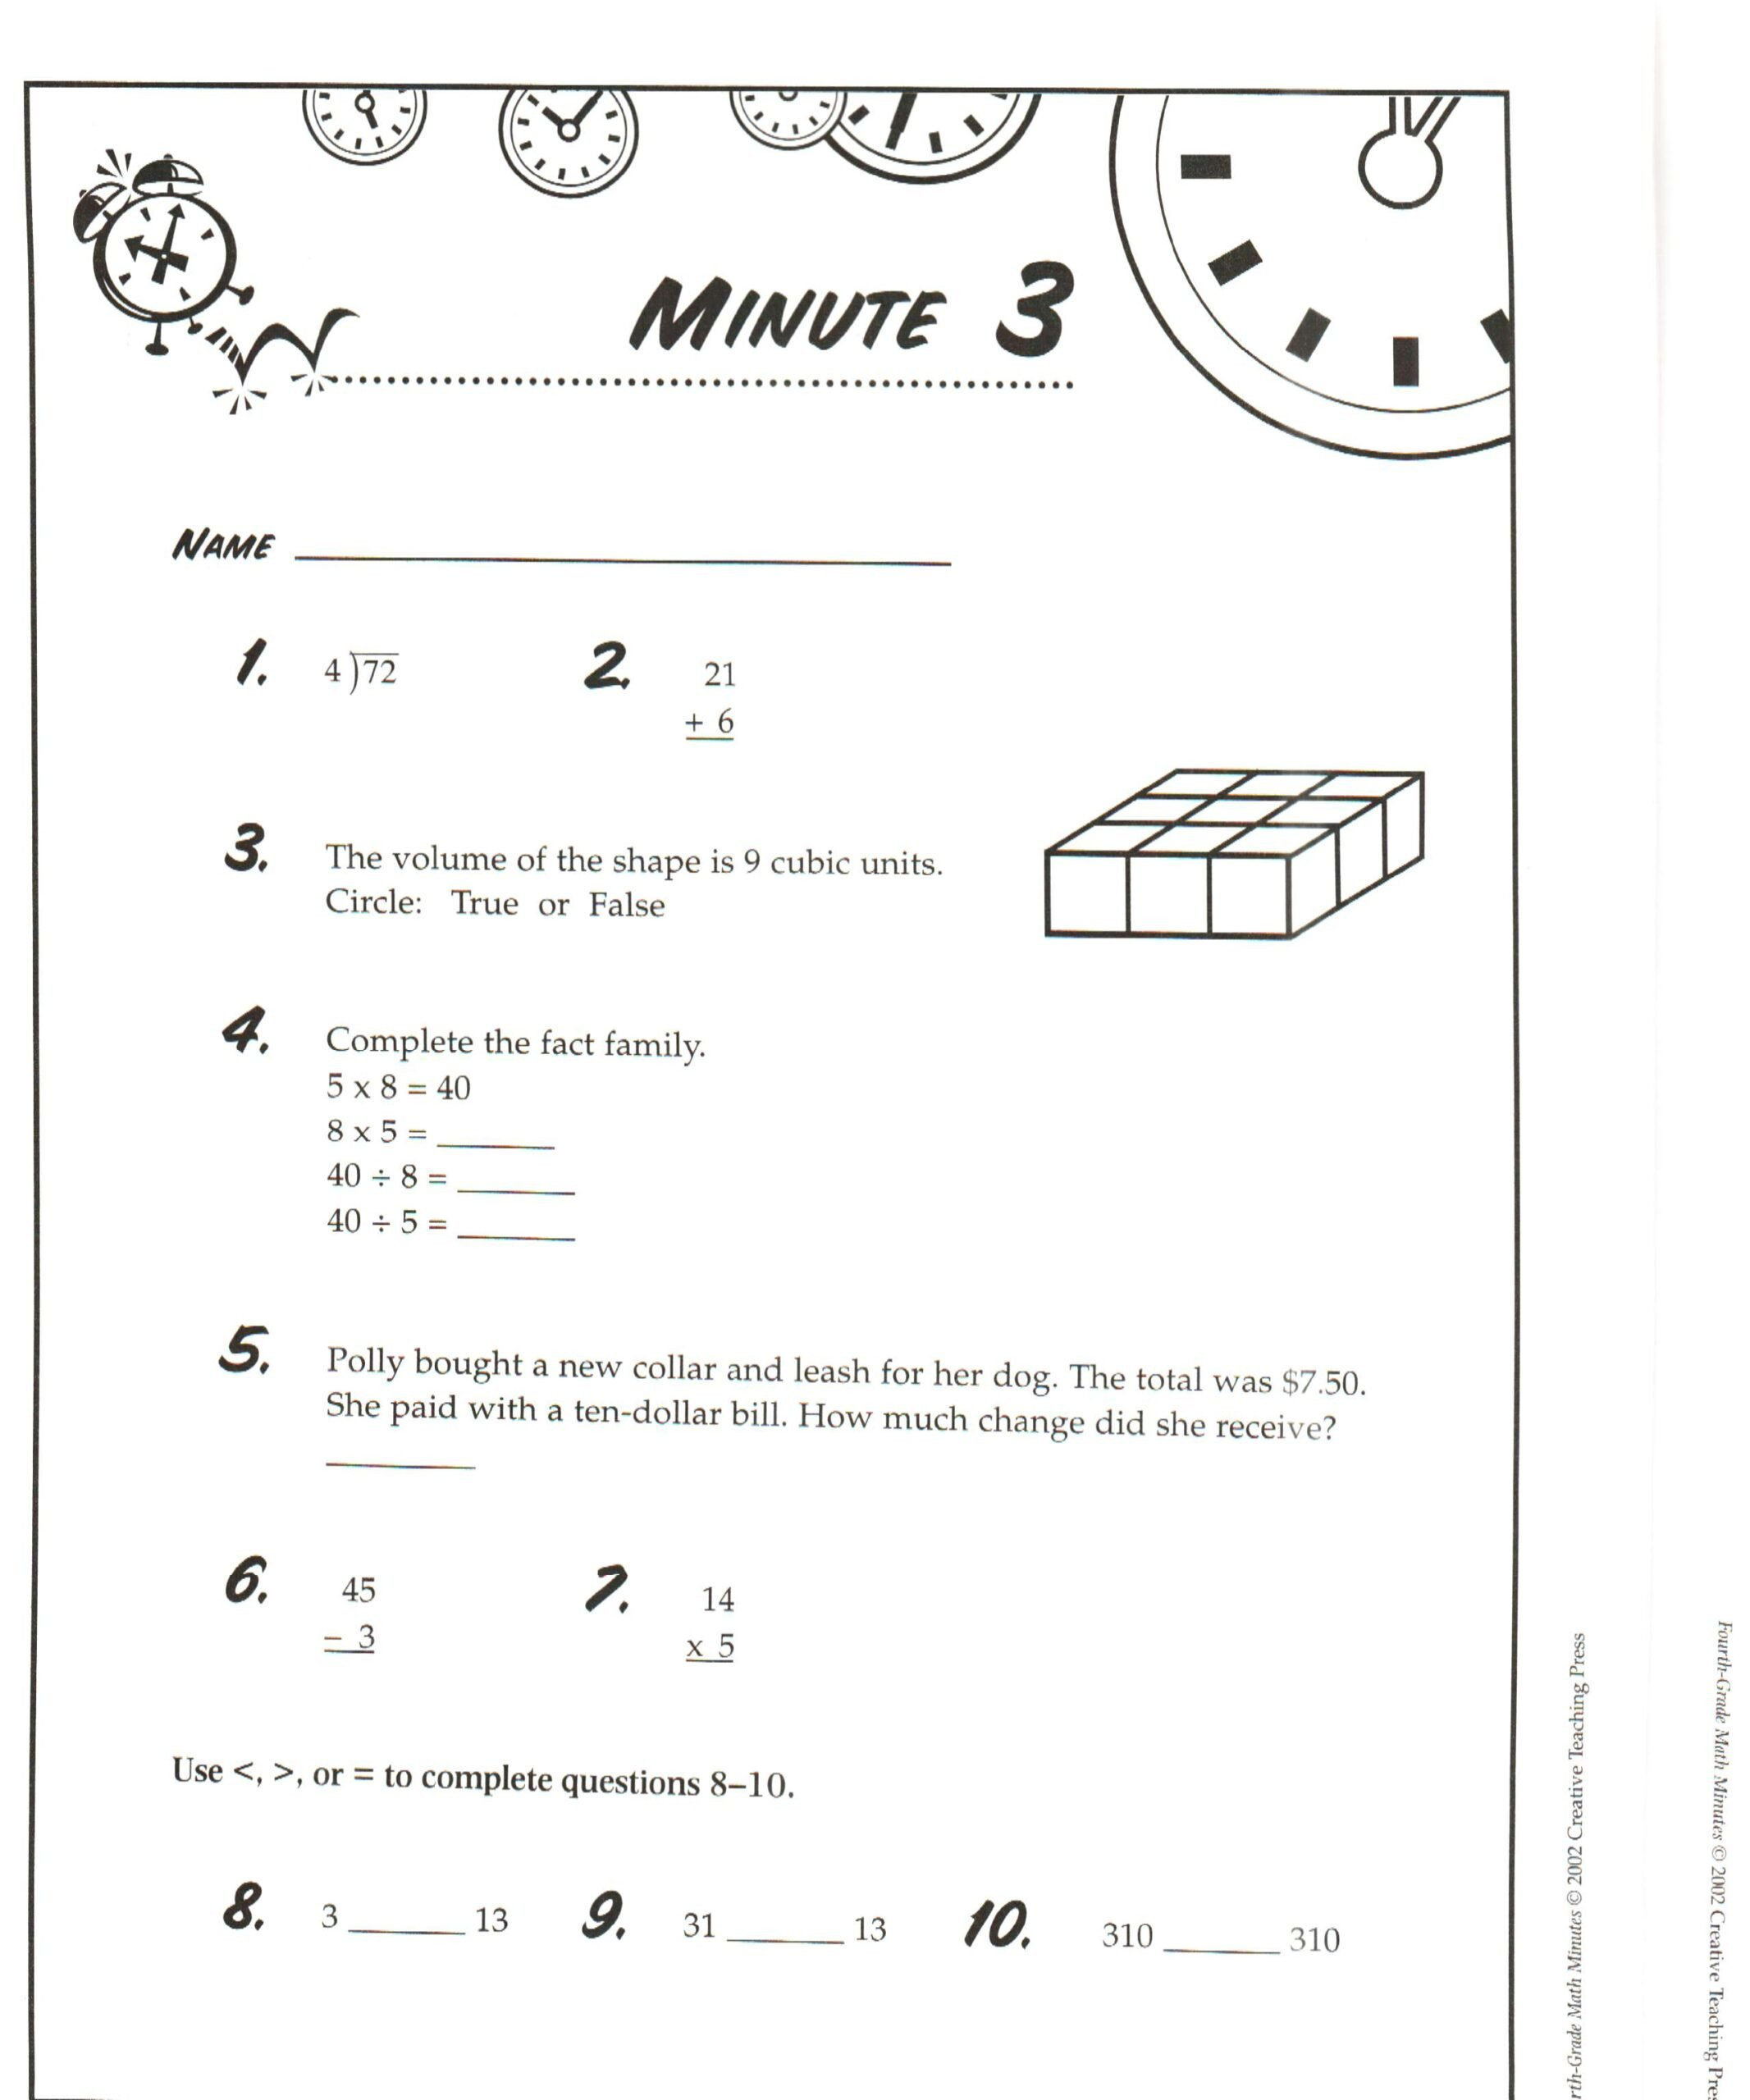 2nd Grade Minute Math Worksheets Math Minute Worksheet Addition Drill Worksheets 7th Grade